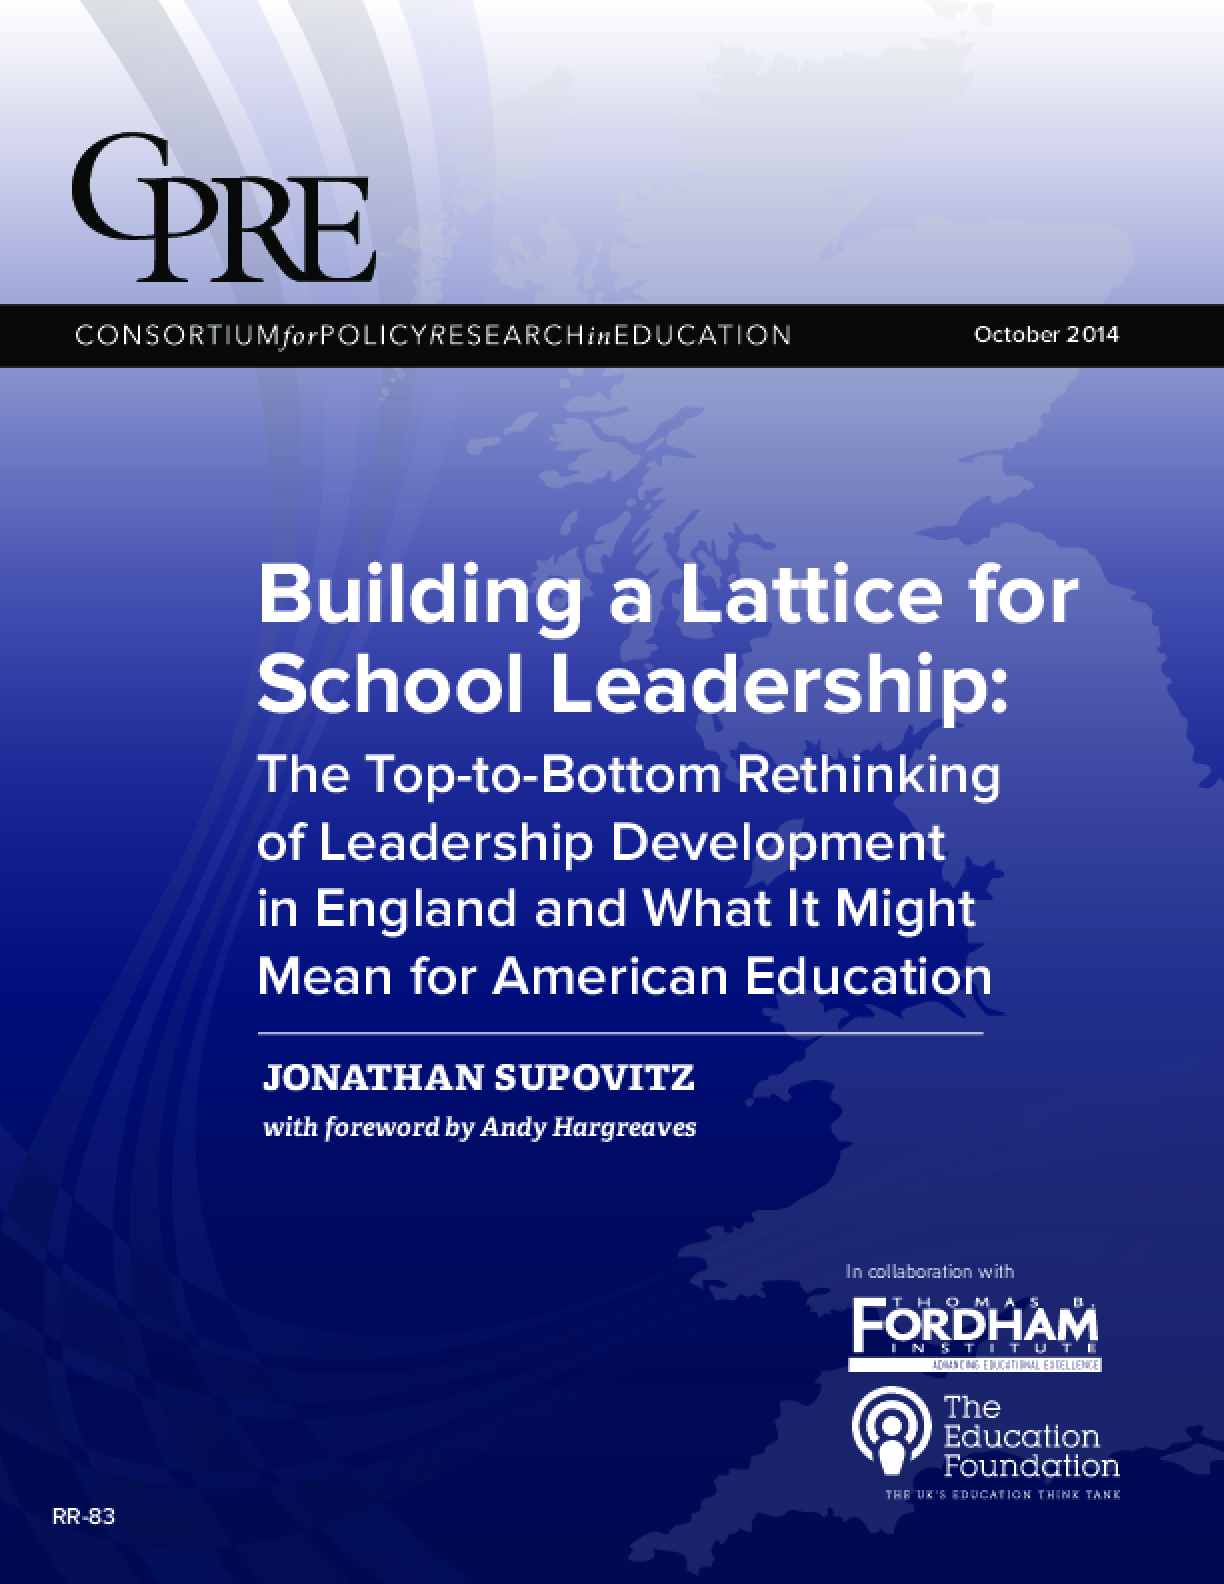 Building a Lattice for School Leadership: The Top-to-Bottom Rethinking of Leadership Development in England and What It Might Mean for American Education